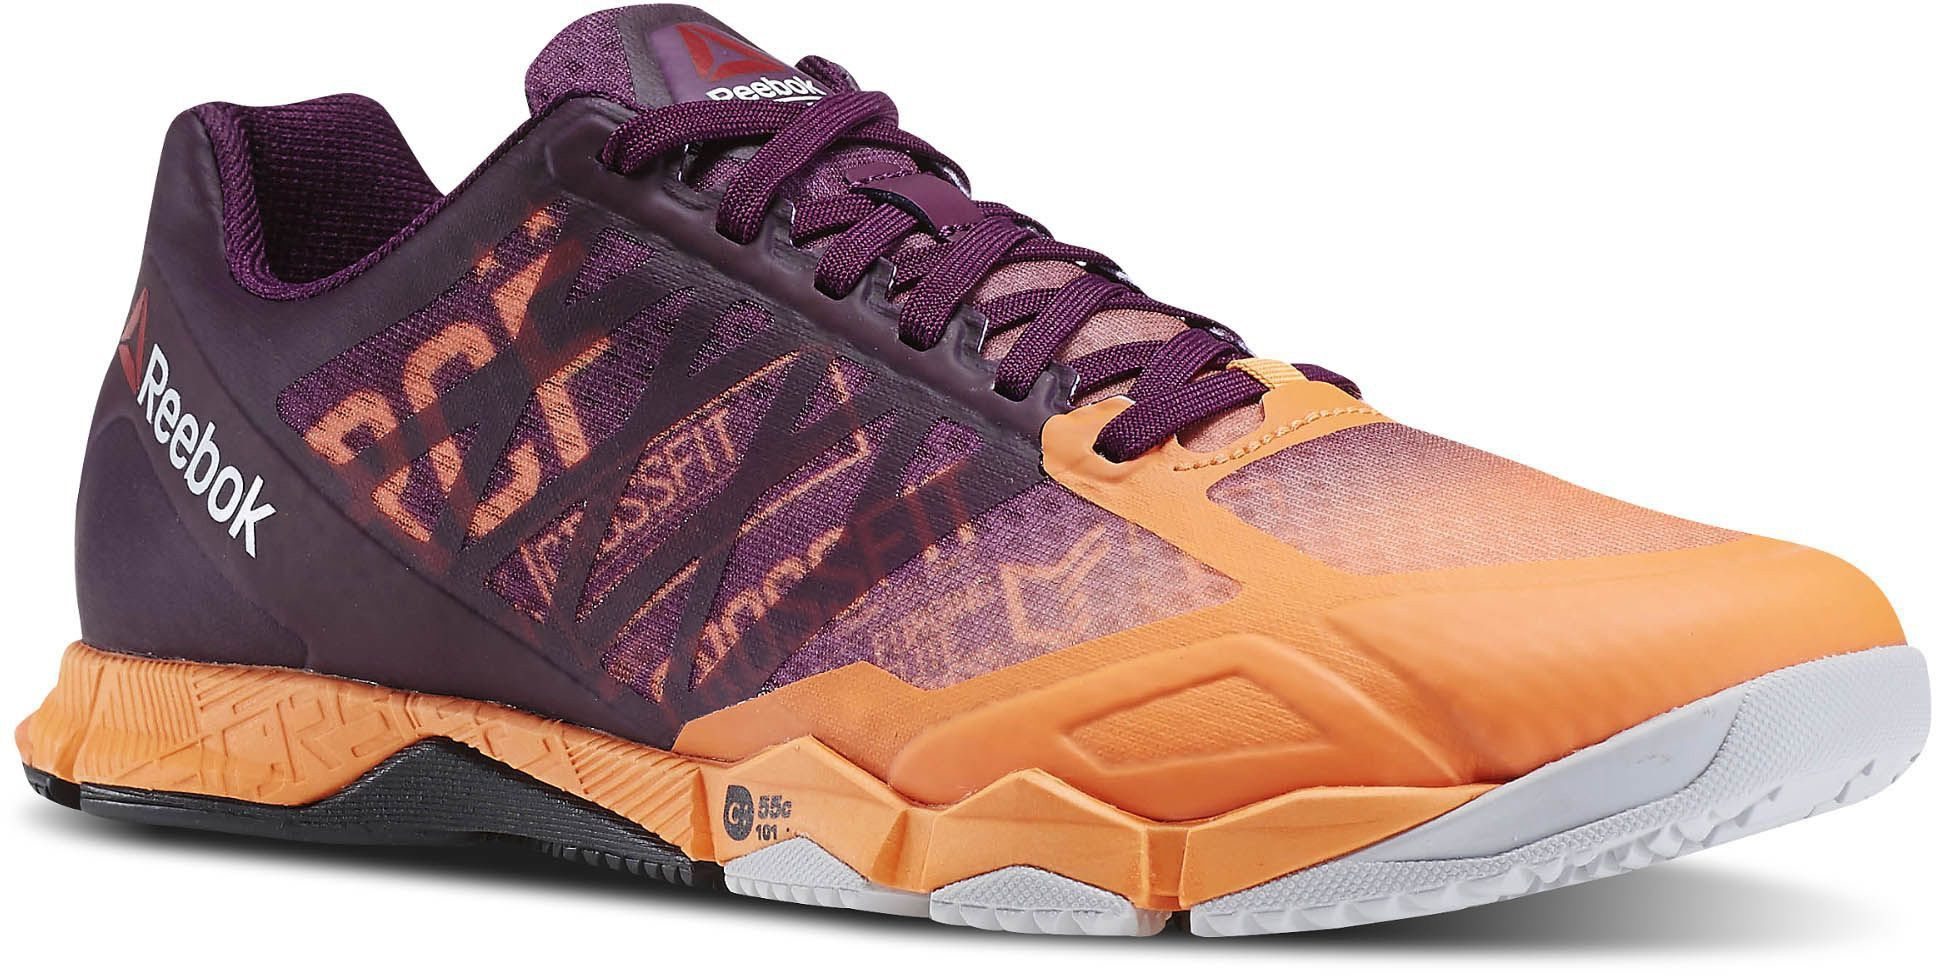 3a59860072f5c9 Reebok (W) SPEED TR Icono Peach Orchid Steel. Find this Pin and ...